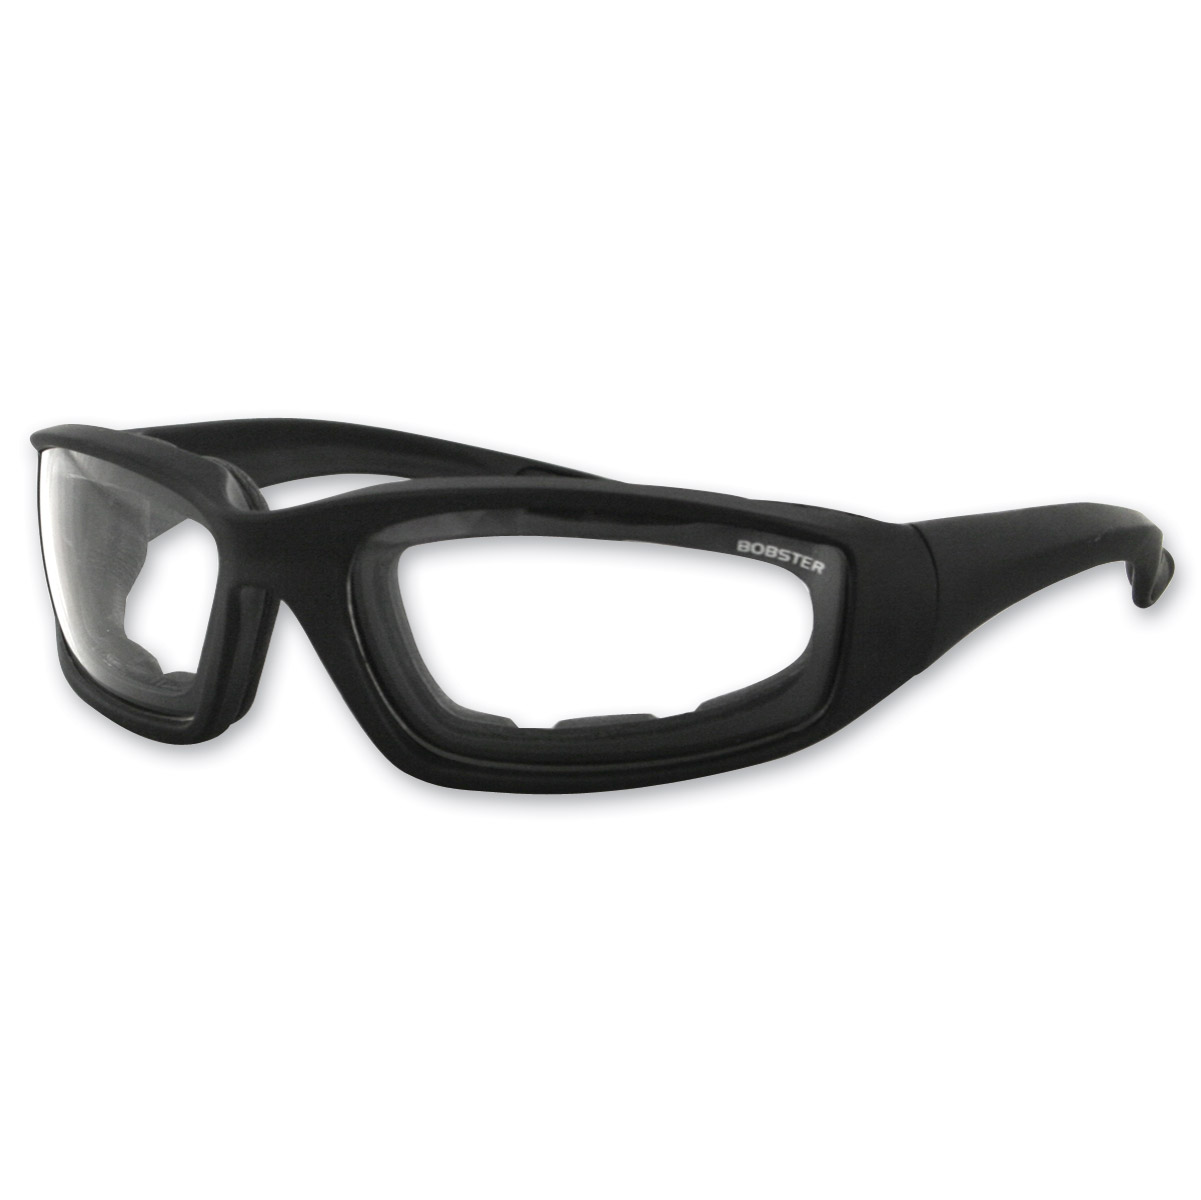 Bobster Foamerz II Clear Sunglasses